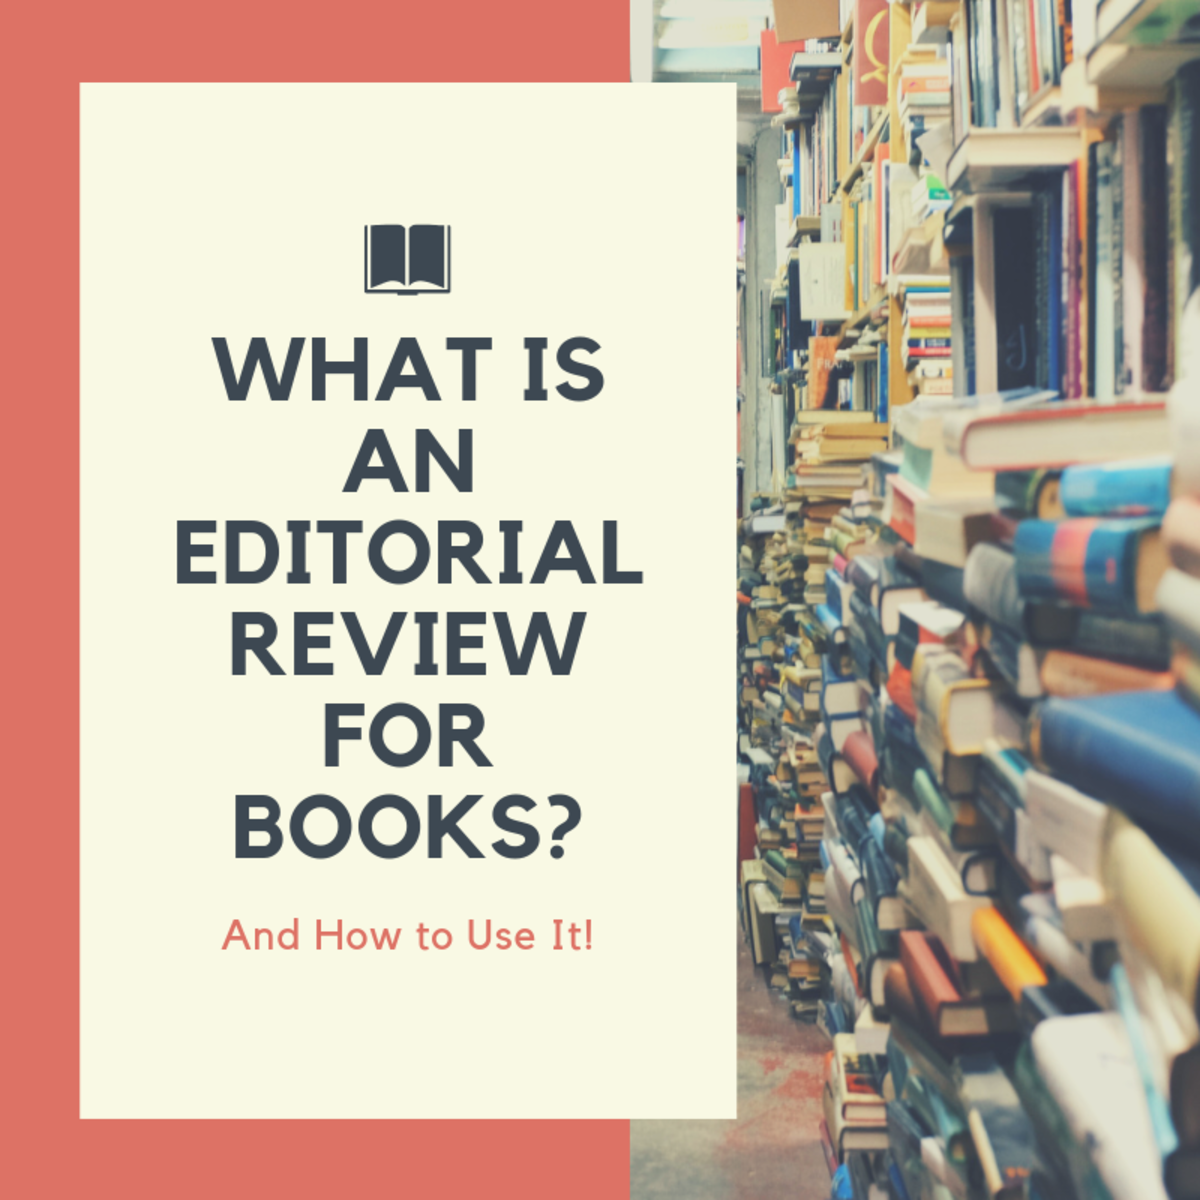 Read on to learn what an editorial review can do for a book!